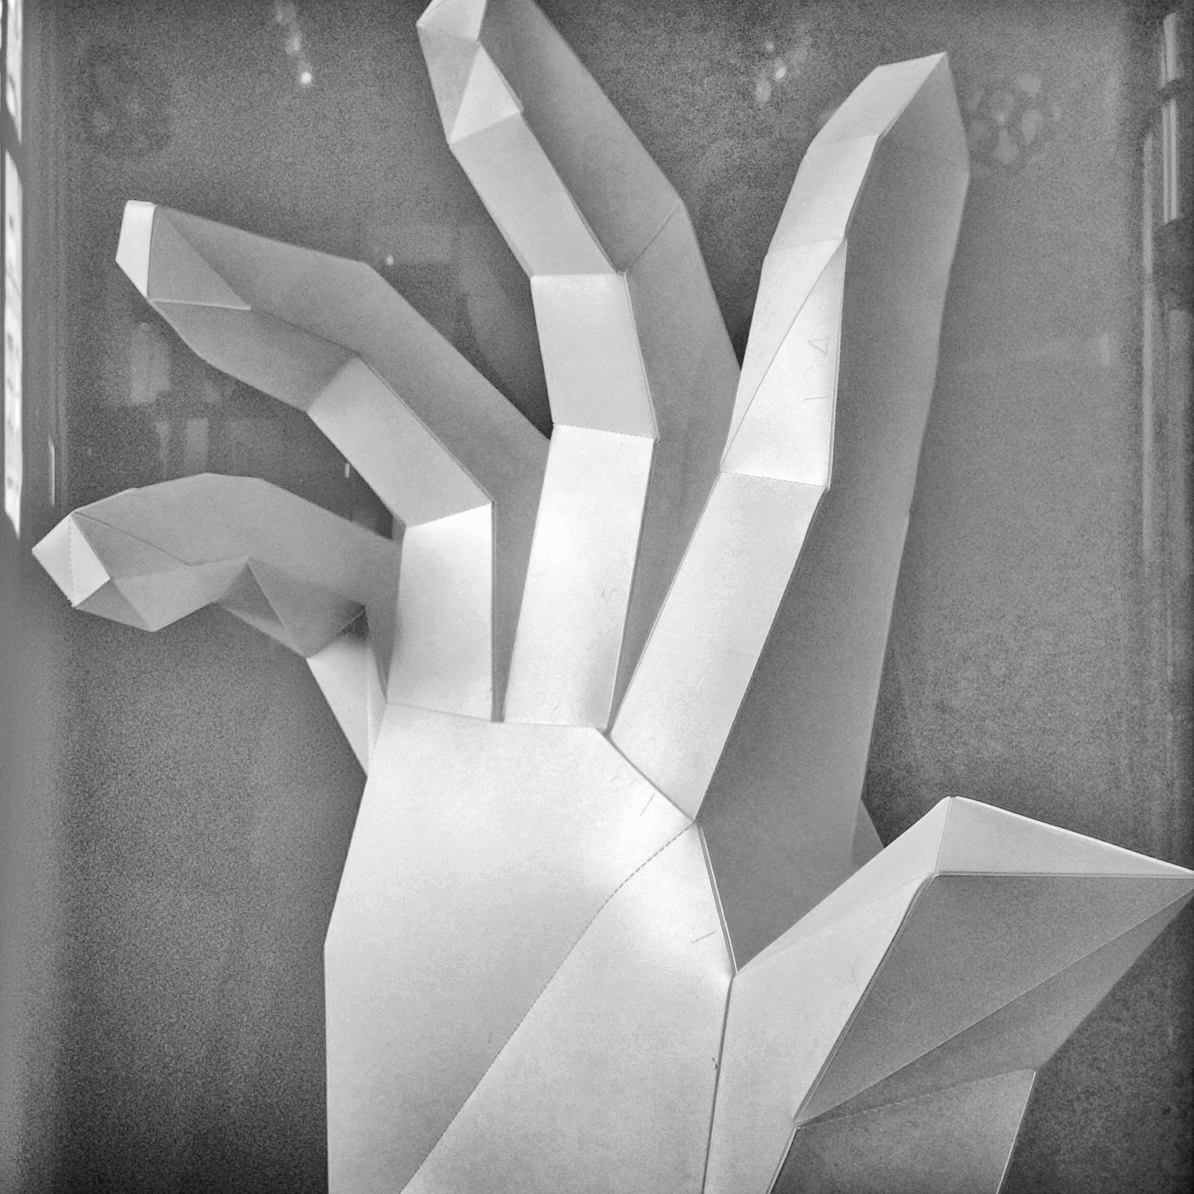 Oversized 3D hand constructed with laser cut styrene pieces. The hand was modeled in 3D using Rhino, and then the model was deconstructed into flattened 2D components.